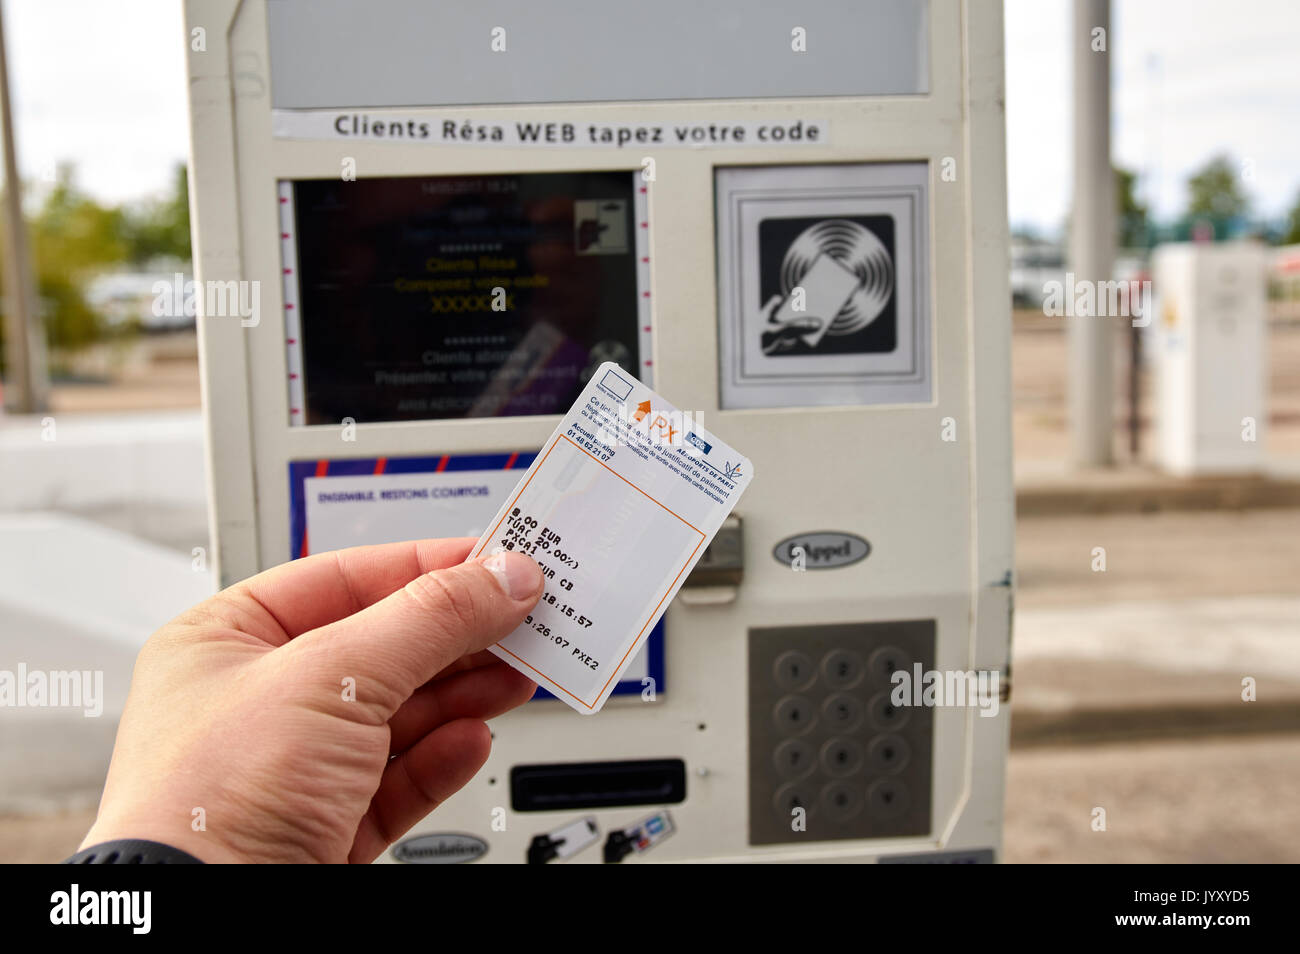 PARIS, FRANCE - MAY 14, 2017 : Man holding a parking ticket